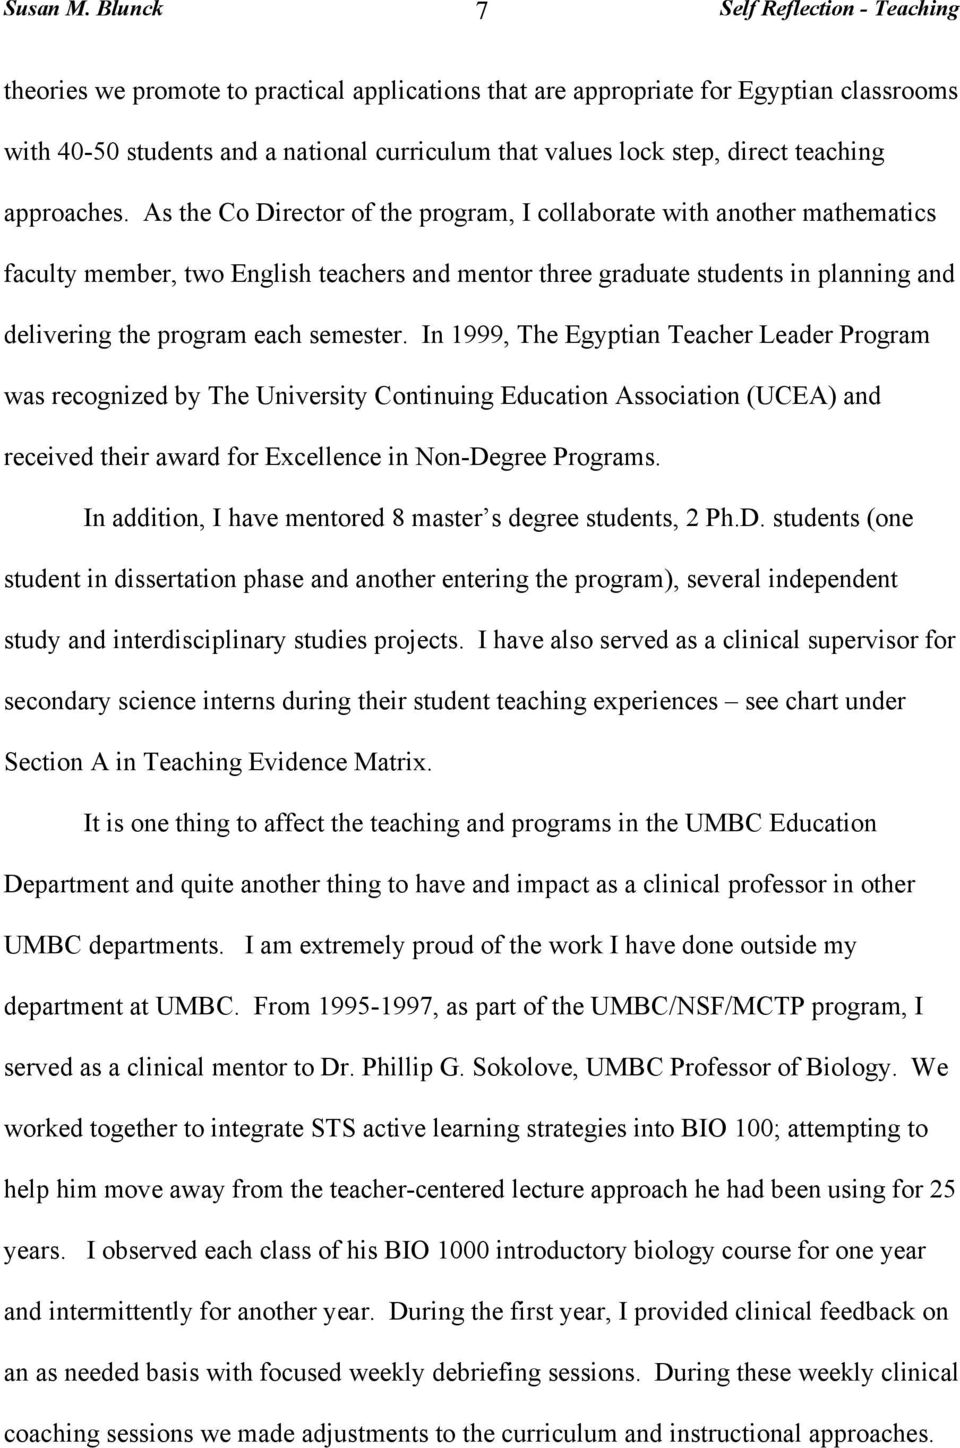 In 1999, The Egyptian Teacher Leader Program was recognized by The University Continuing Education Association (UCEA) and received their award for Excellence in Non-Degree Programs.